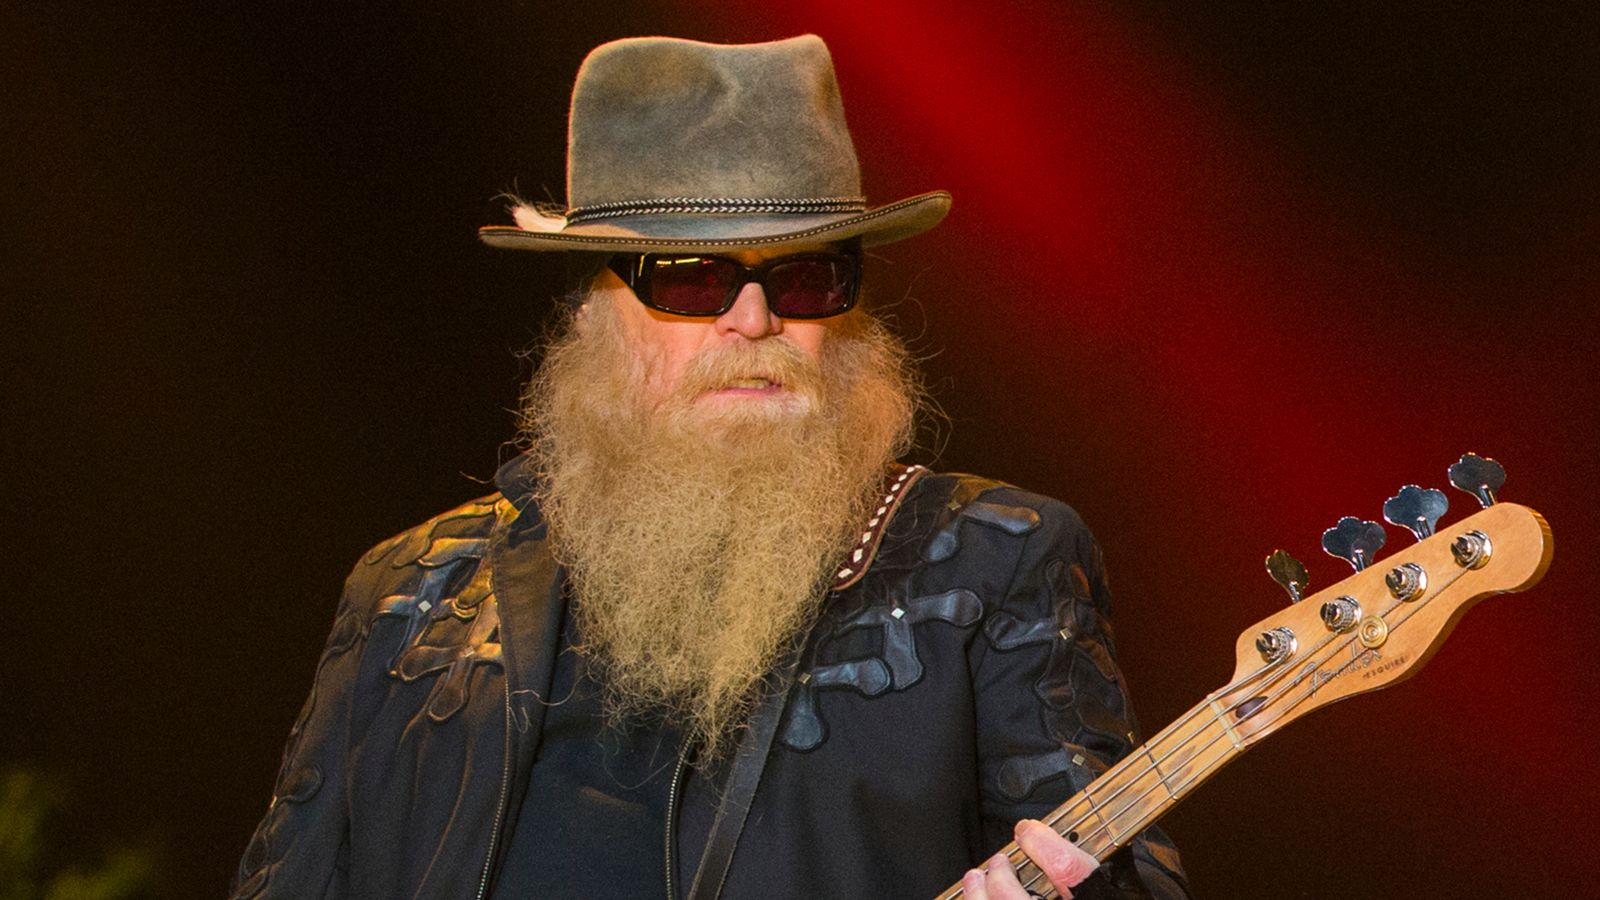 Dusty Hill: ZZ Top bassist has died aged 72, says US rock group